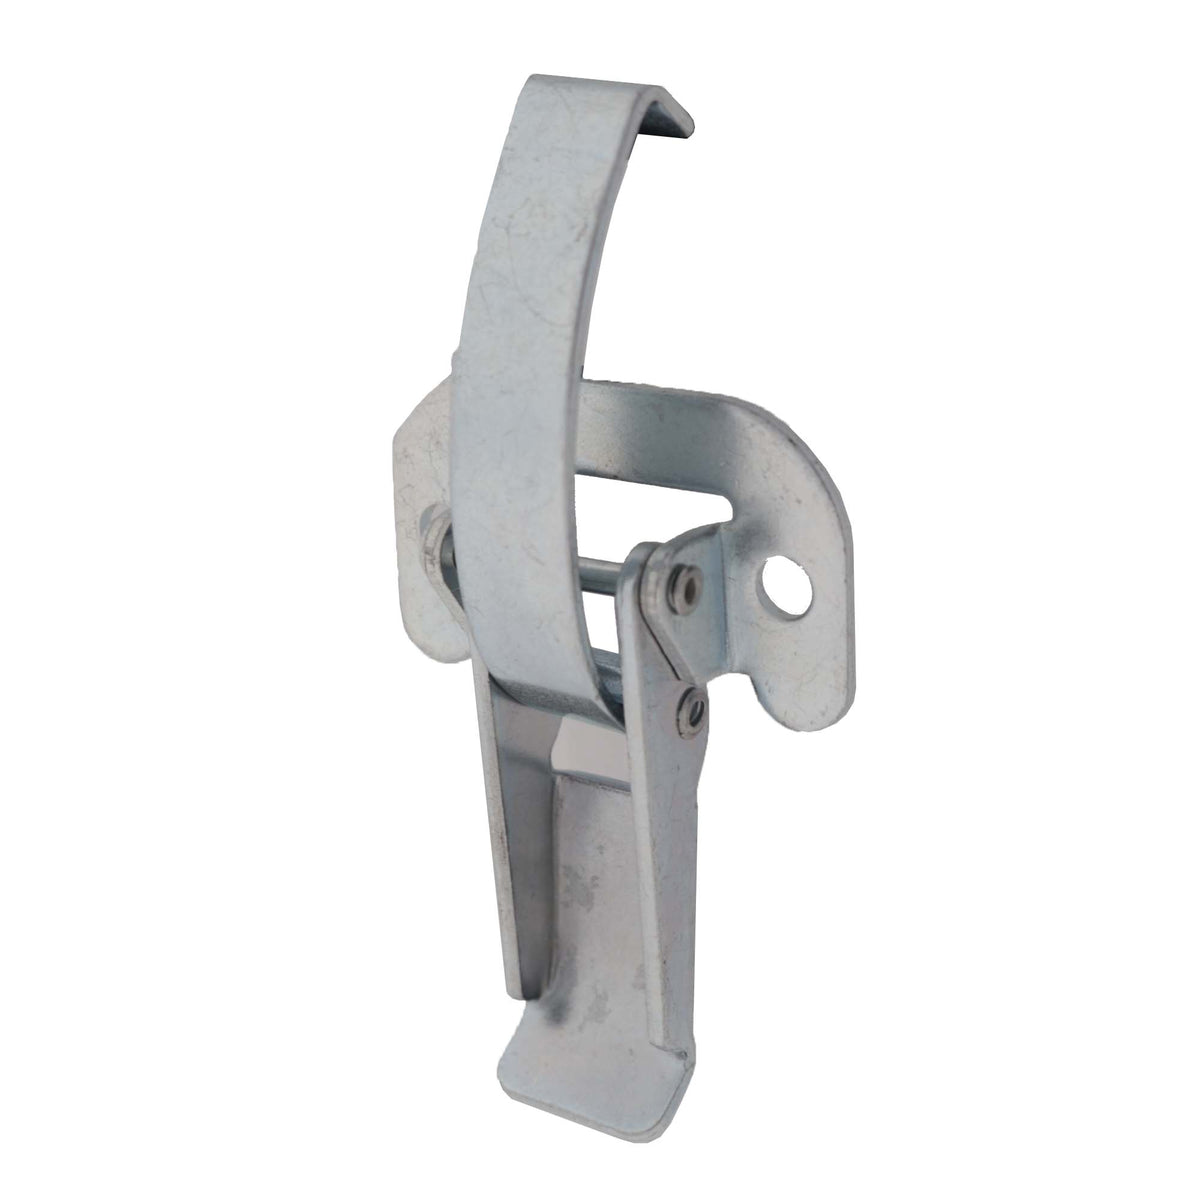 Lever Operated Drawlatch (with flat mounting plate), 3/4 view